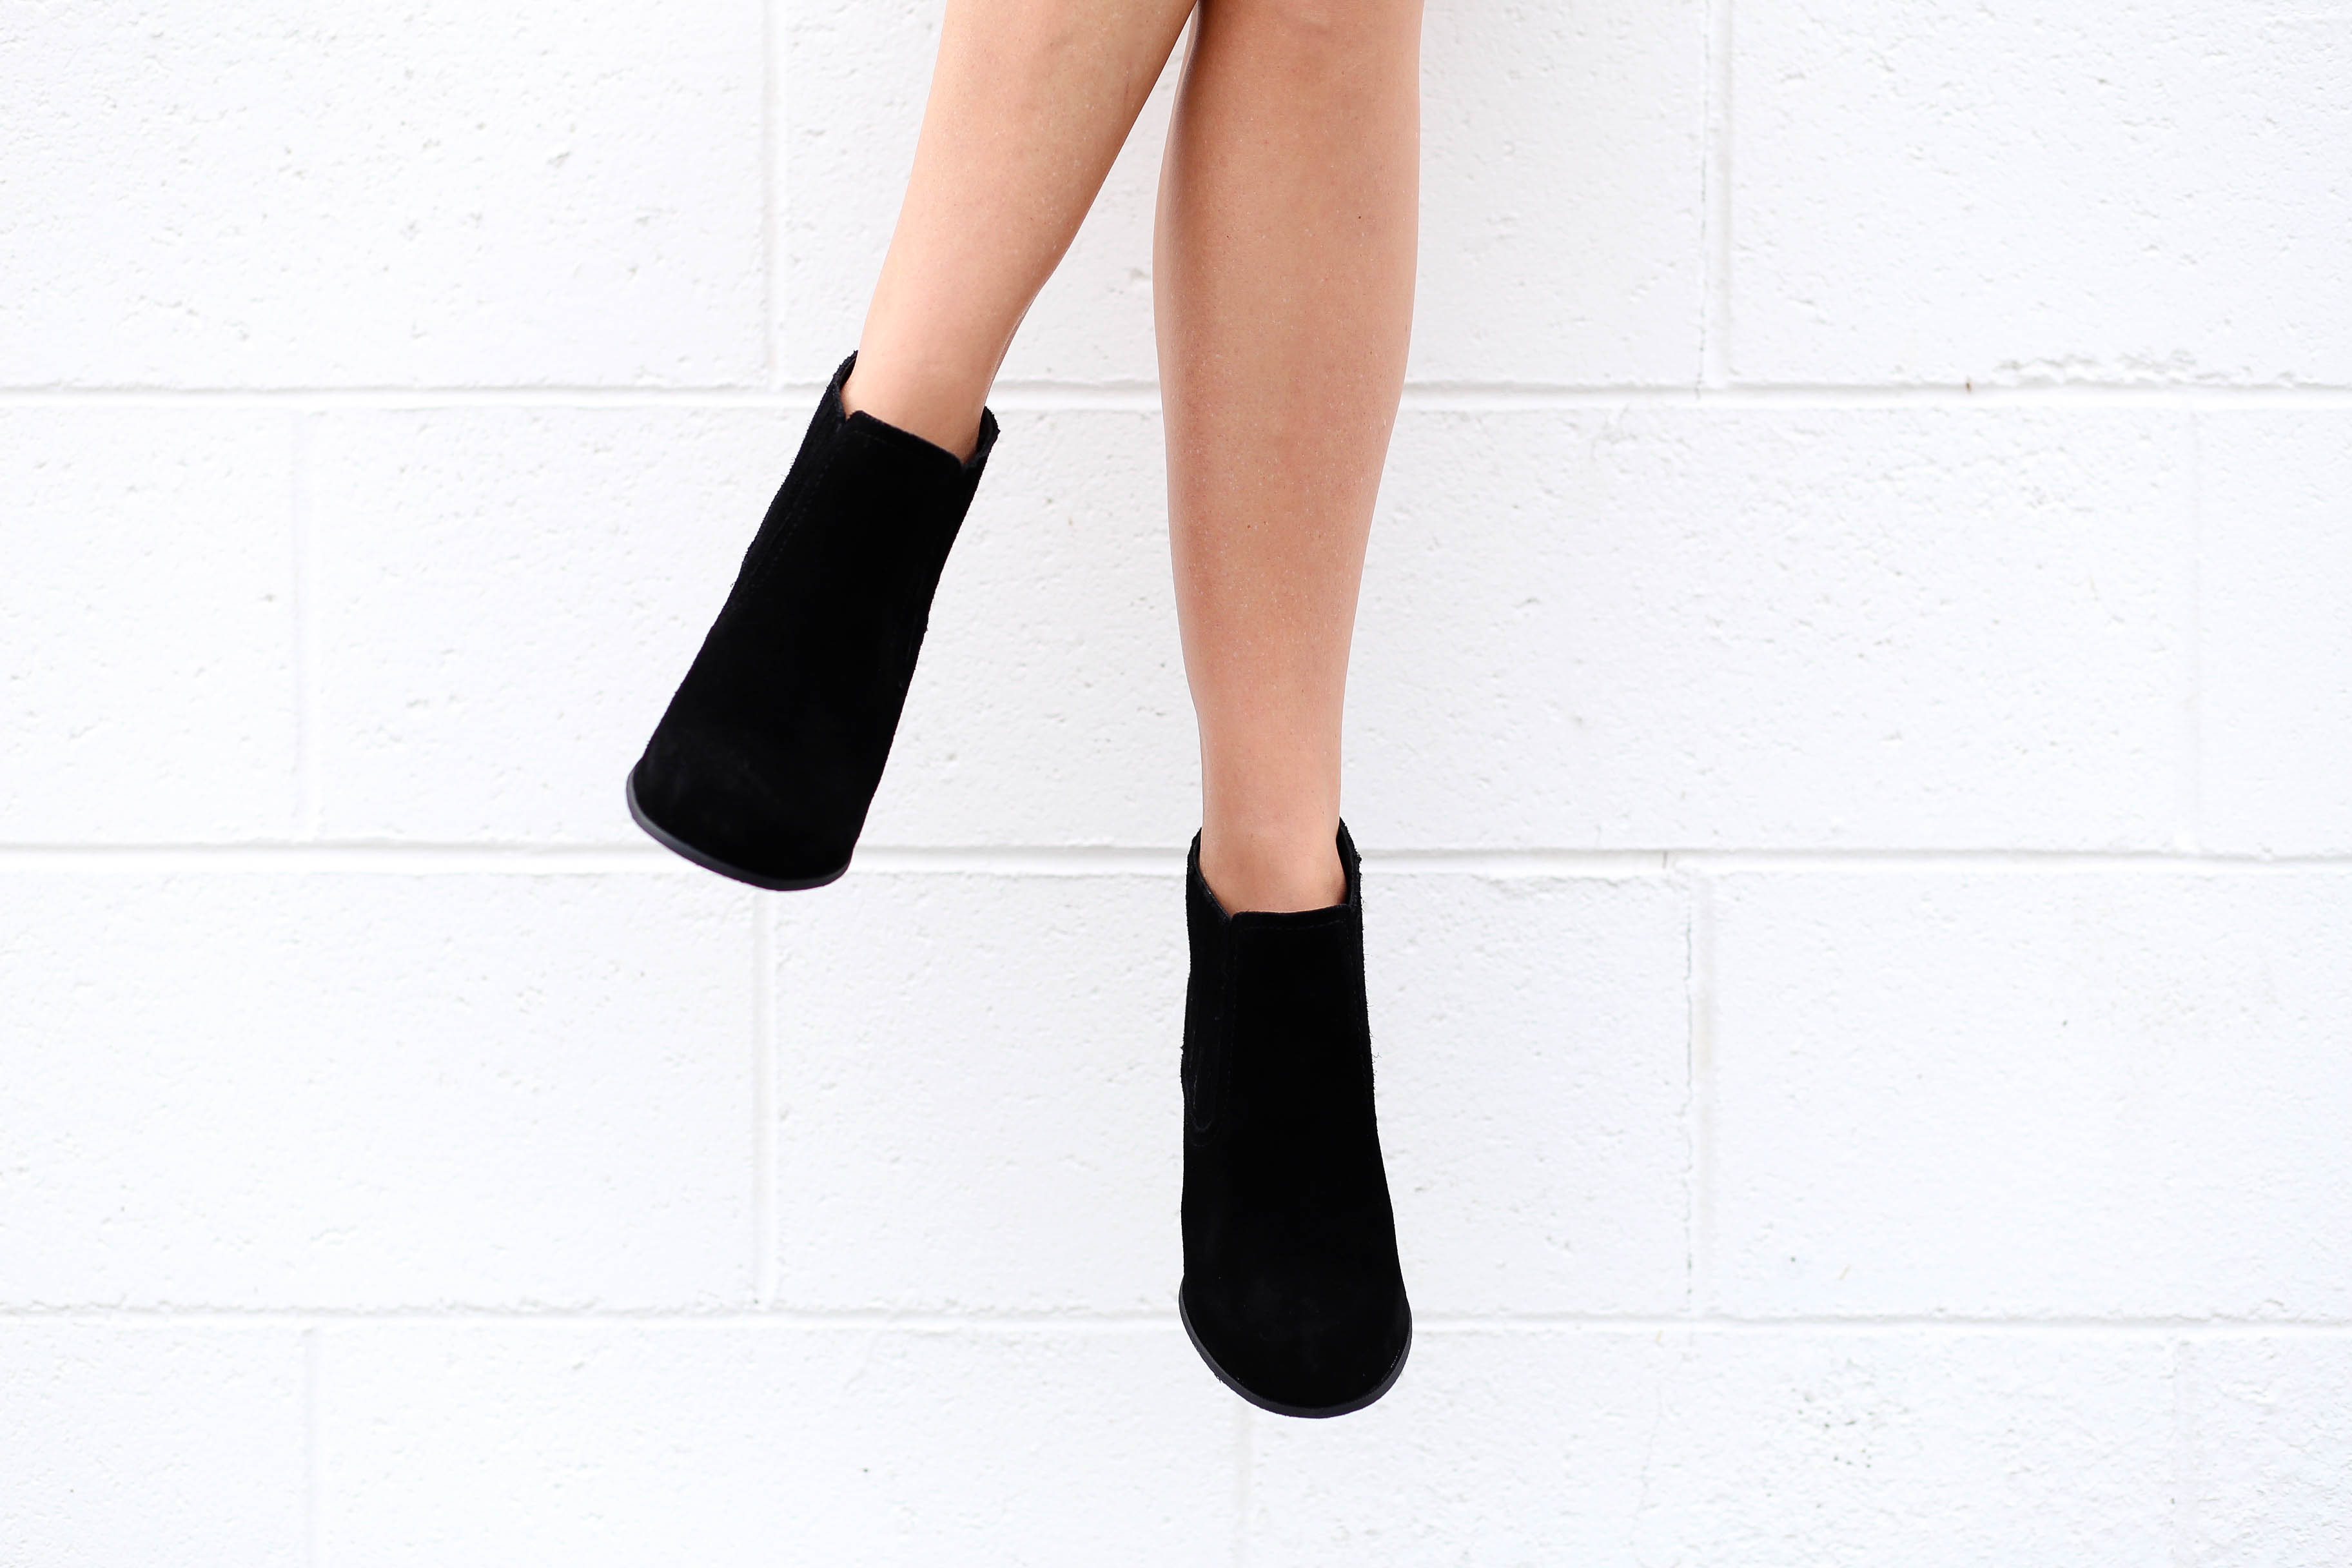 Warwick Booties from Restricted Shoes - For 25% off, use code: ADORNED25